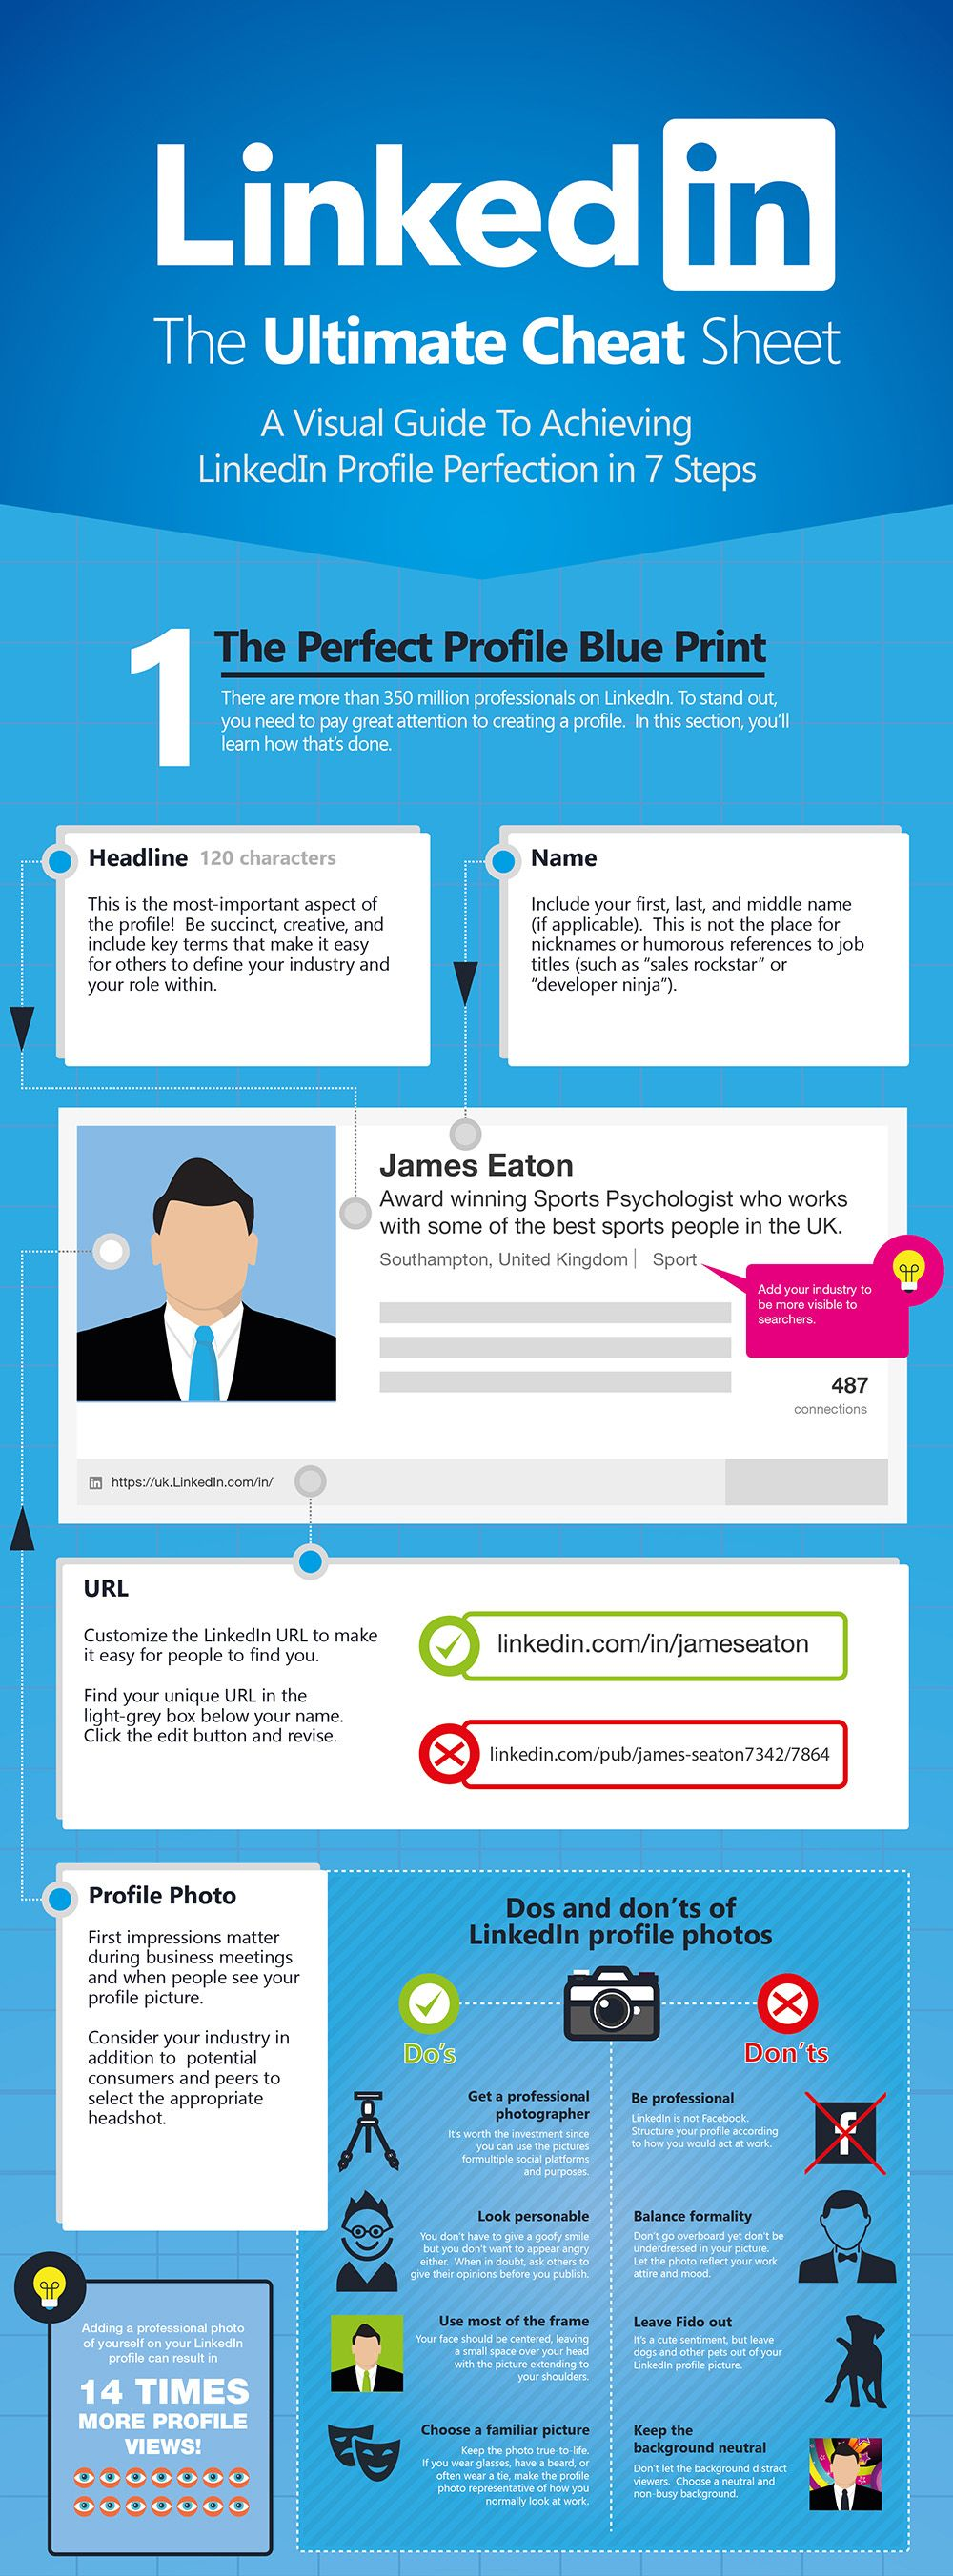 Tips to Achieve LinkedIn Profile Perfection | Infographic ...